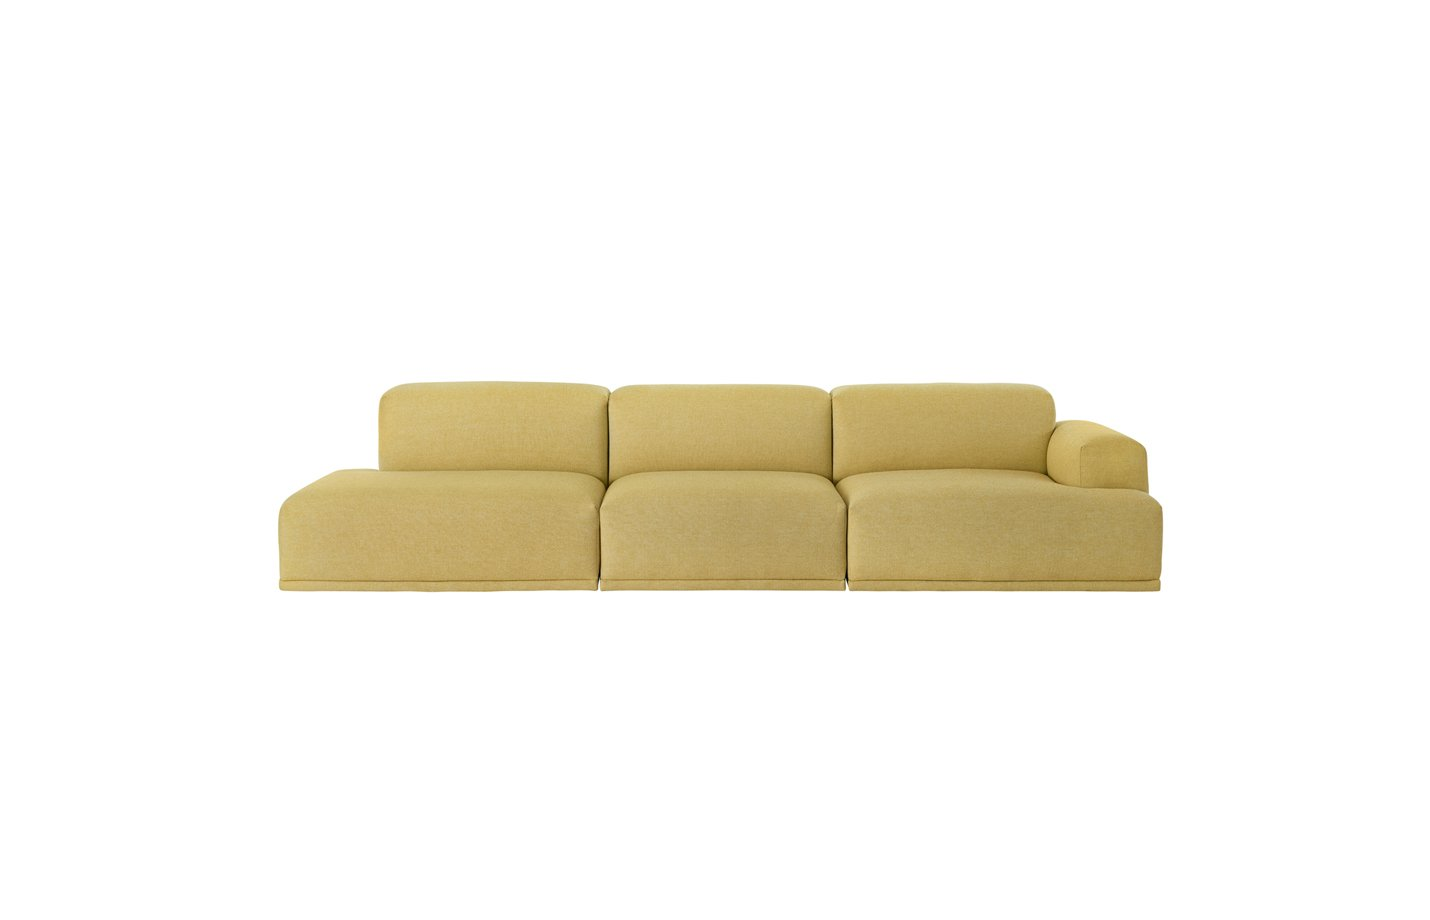 Connect-sofa-three-seater-lounge-yellow